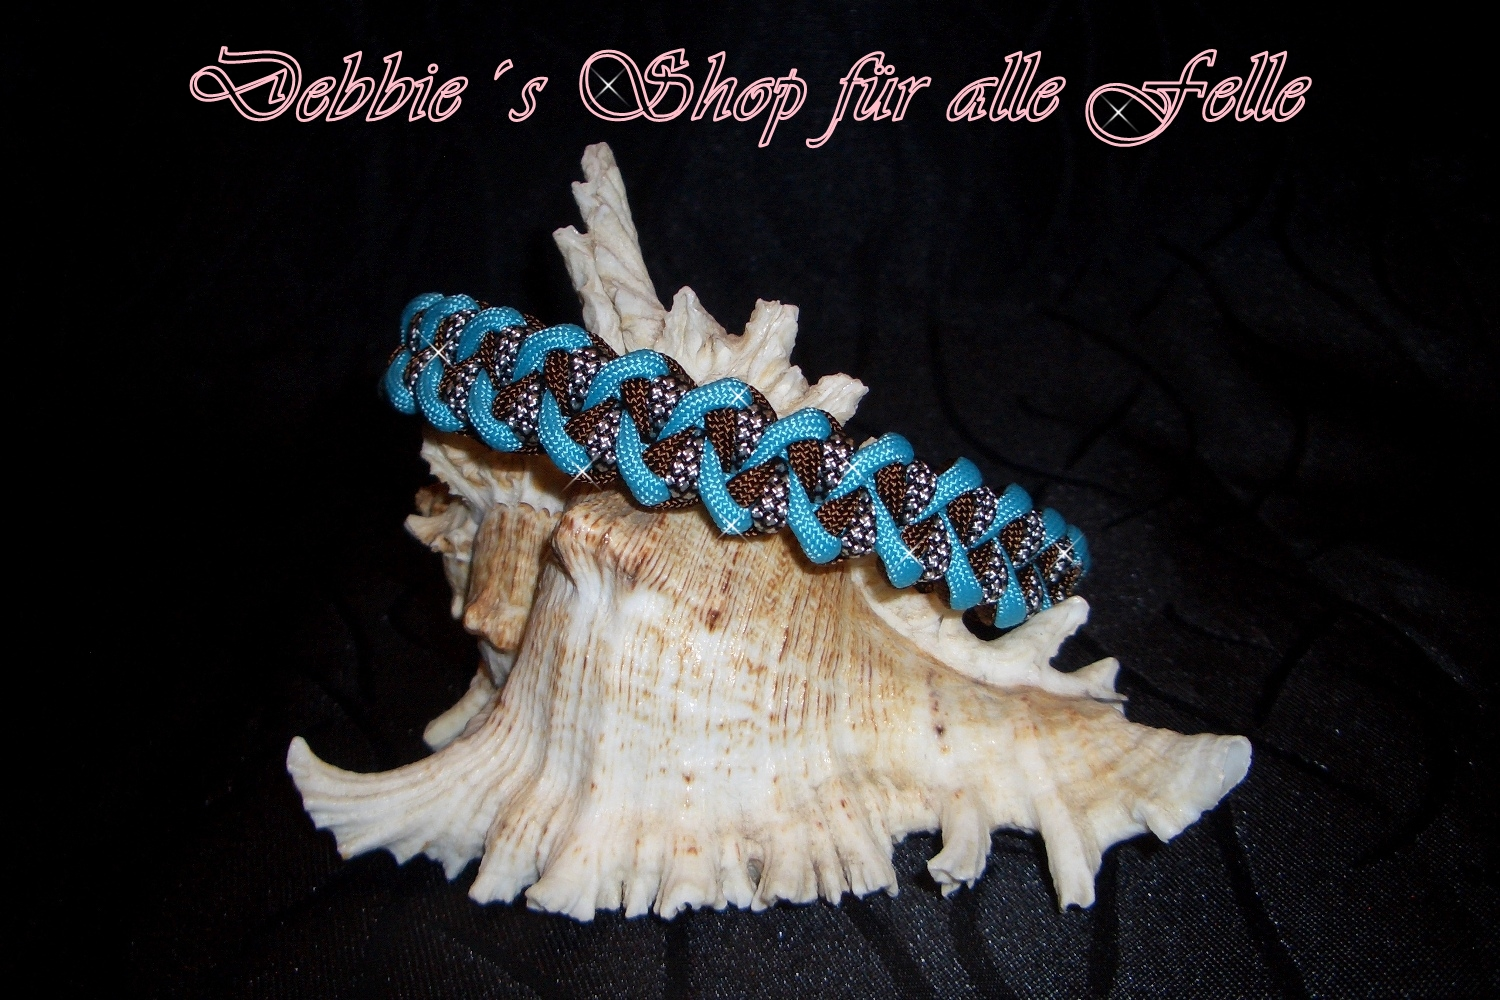 walnut brown / neon turquoise / silver diamonds